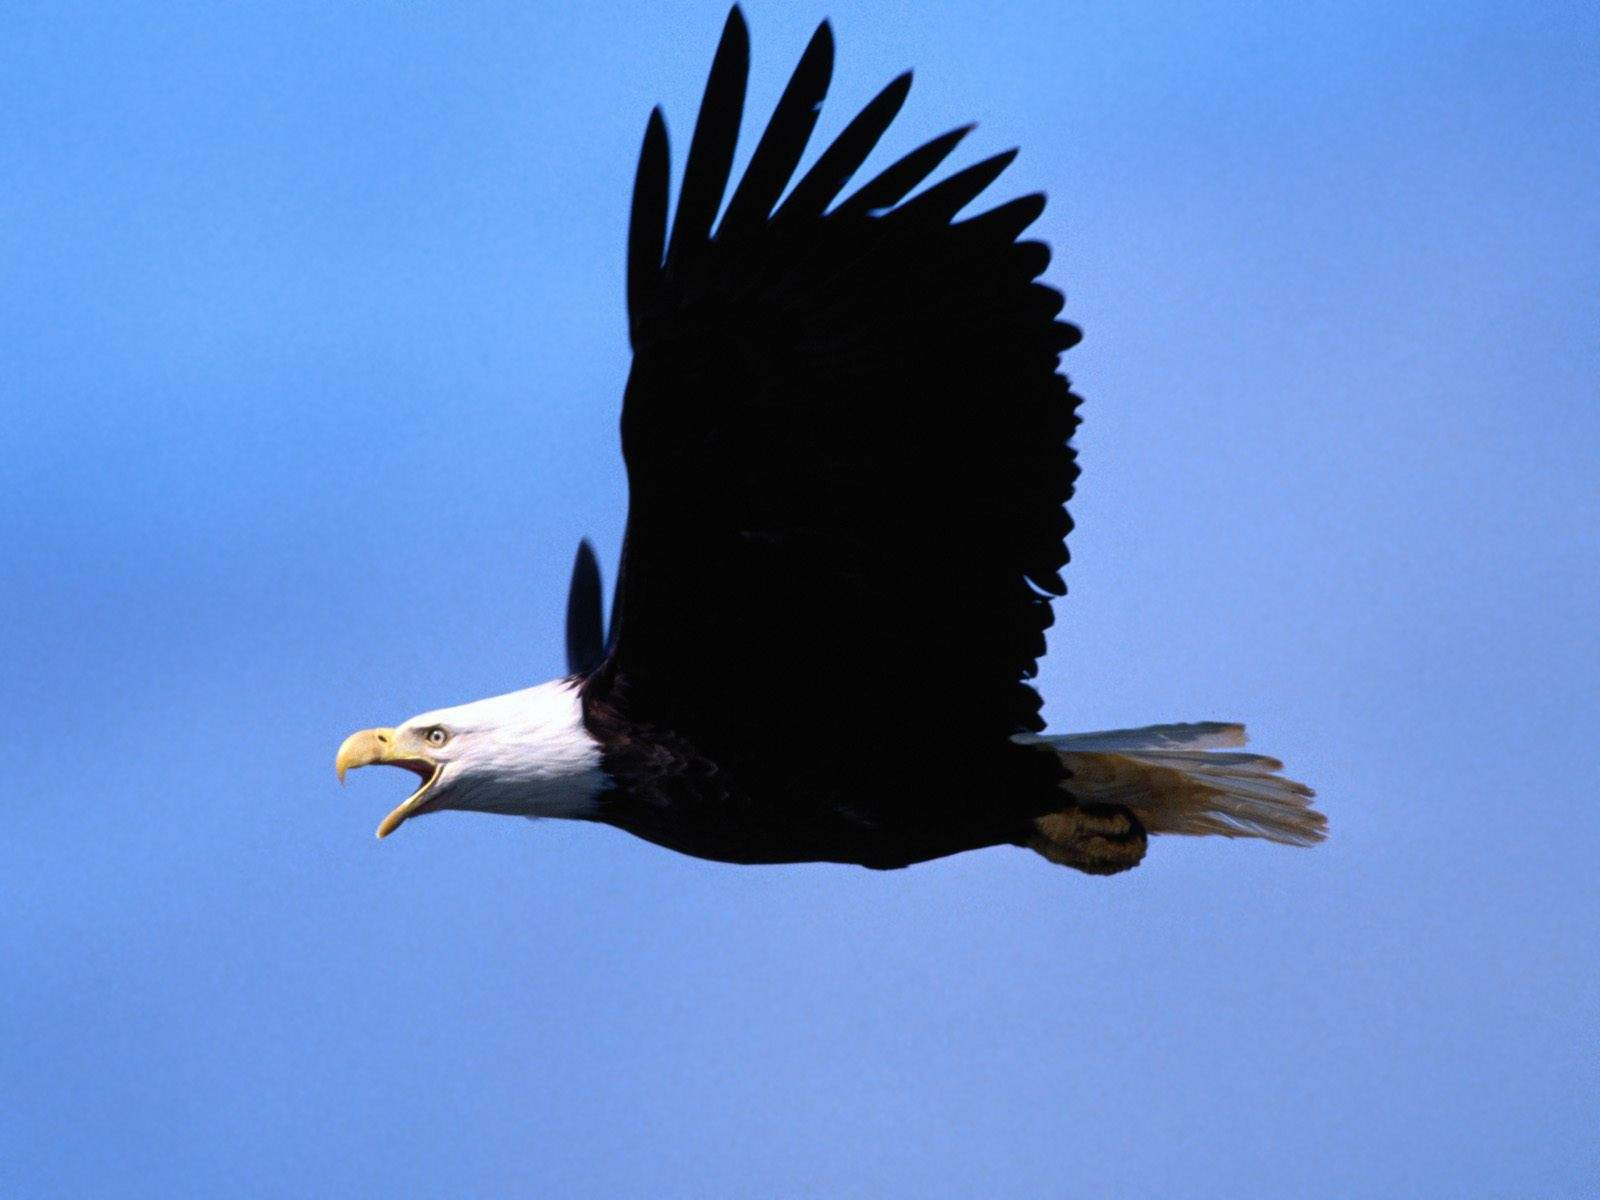 http://1.bp.blogspot.com/-3yE92O7Gr2Q/UHBjzB0IDTI/AAAAAAAAAsI/H-brMyfhwlY/s1600/Call-of-the-Wild-Bald-Eagle-hd-wallpaper-desktop.jpg